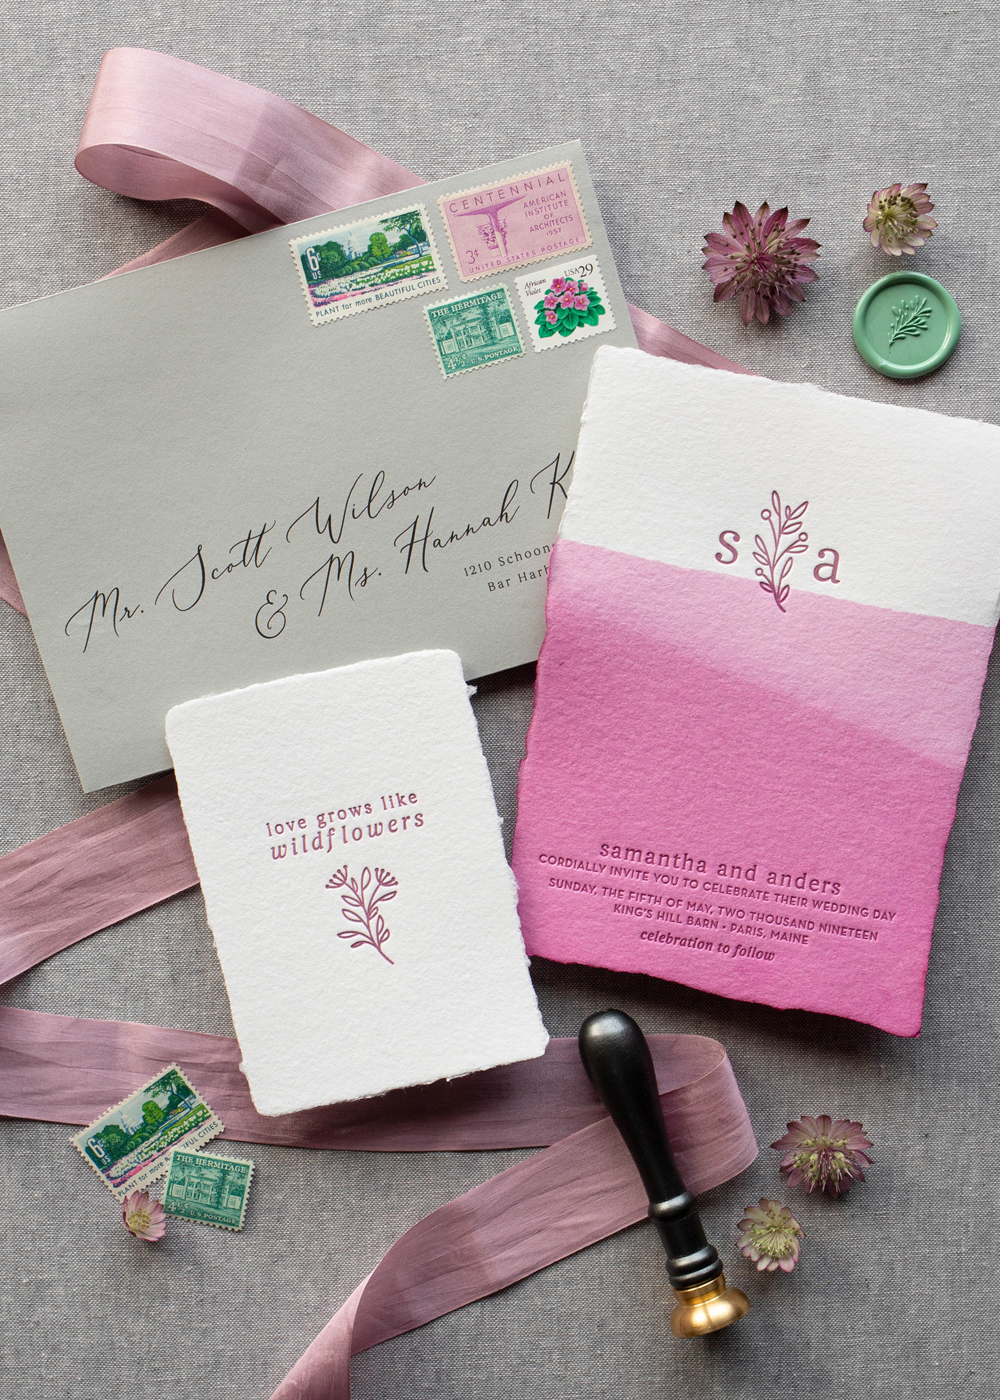 original and creative wedding invitation suite, nature and floral inspired, letterpress printed with original illustration, hand dyed